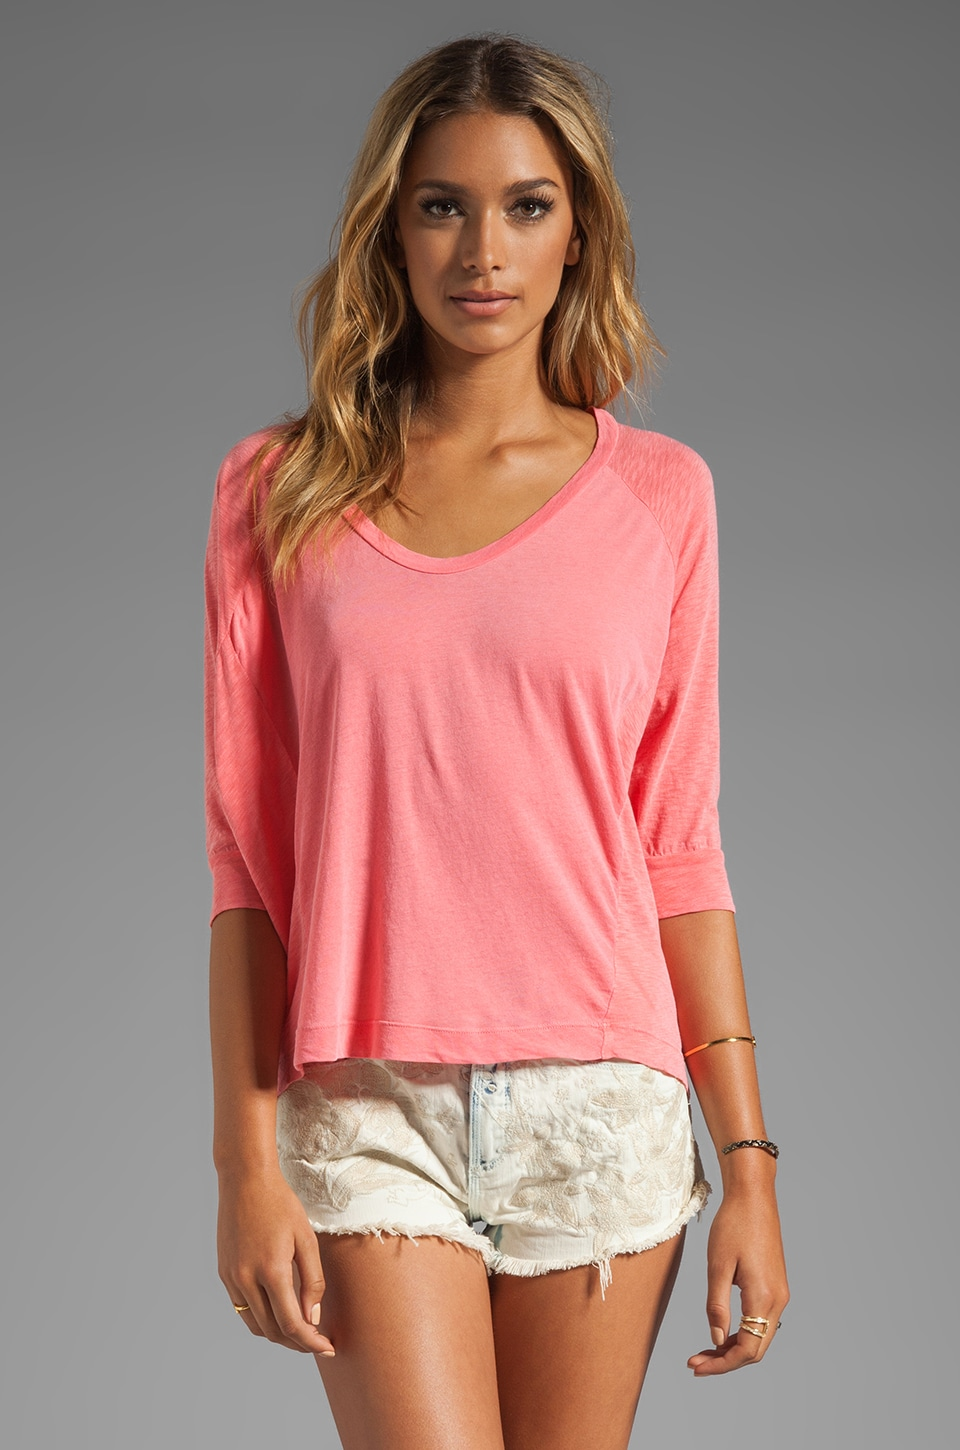 Splendid Whisper Long Sleeve Tee in Watermelon